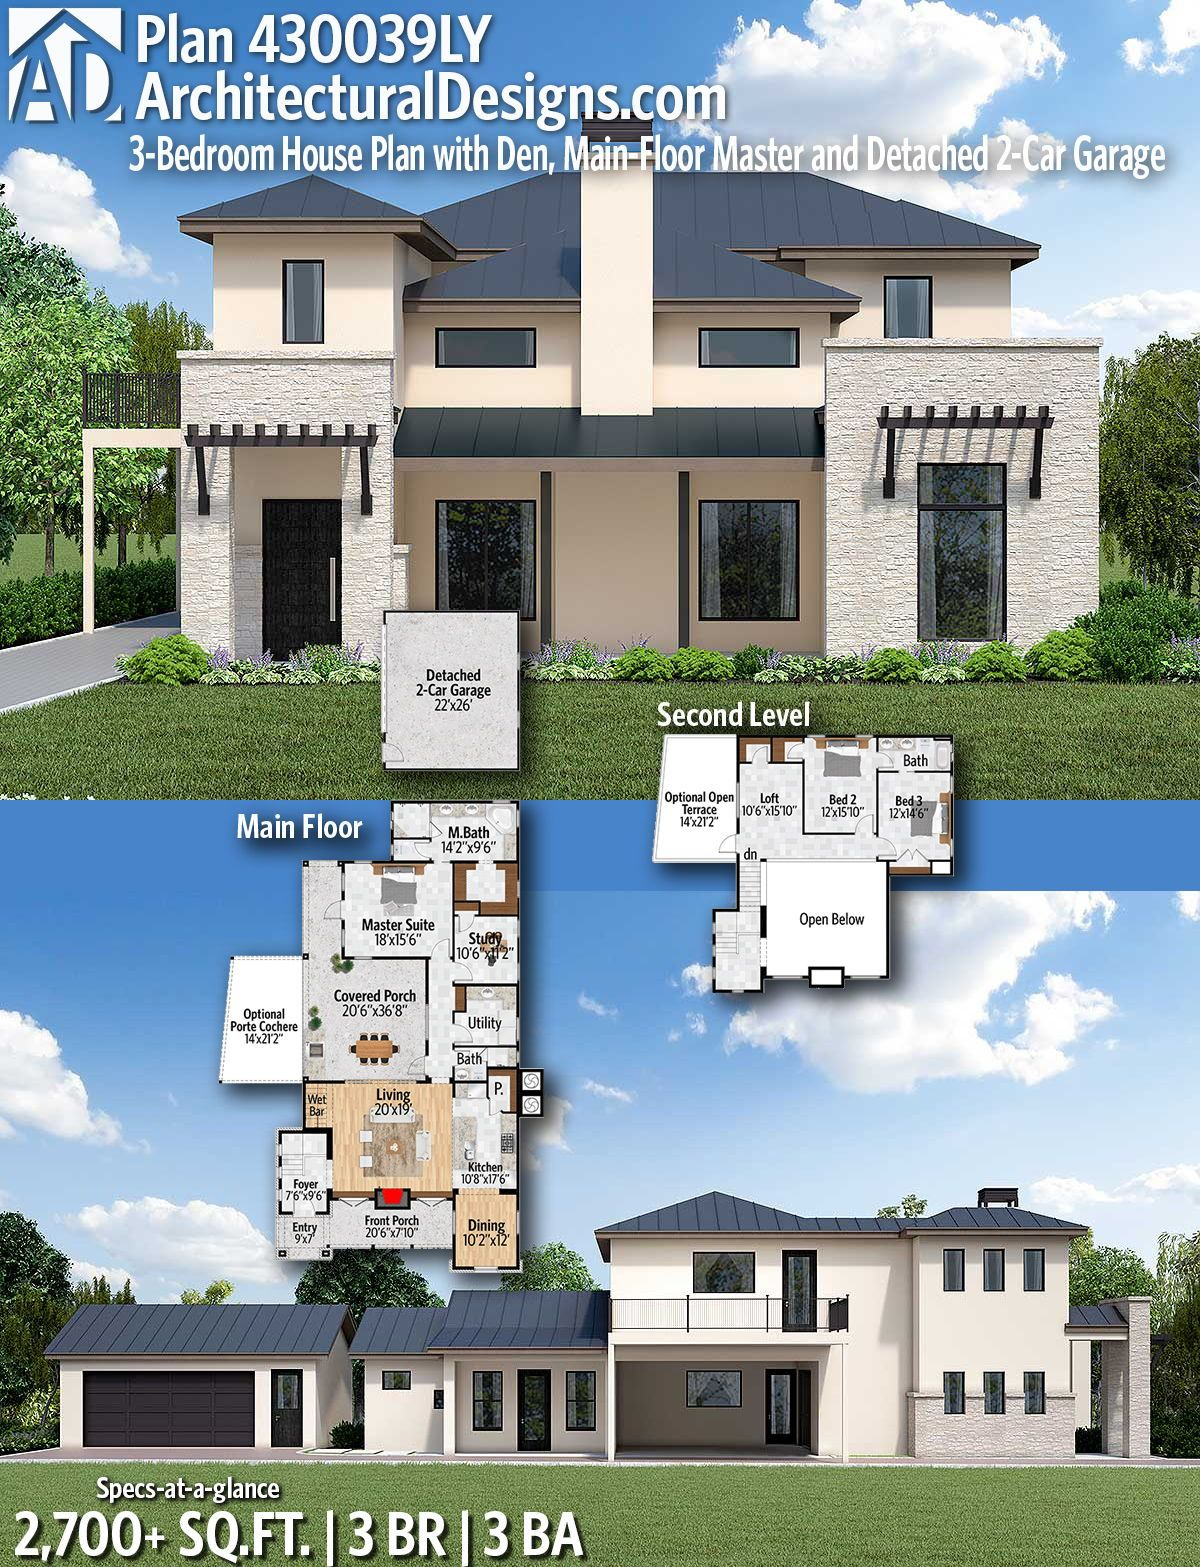 Architectural designs home plan ly gives you bedrooms baths and sq ft ready when are where do want to build also rh pinterest